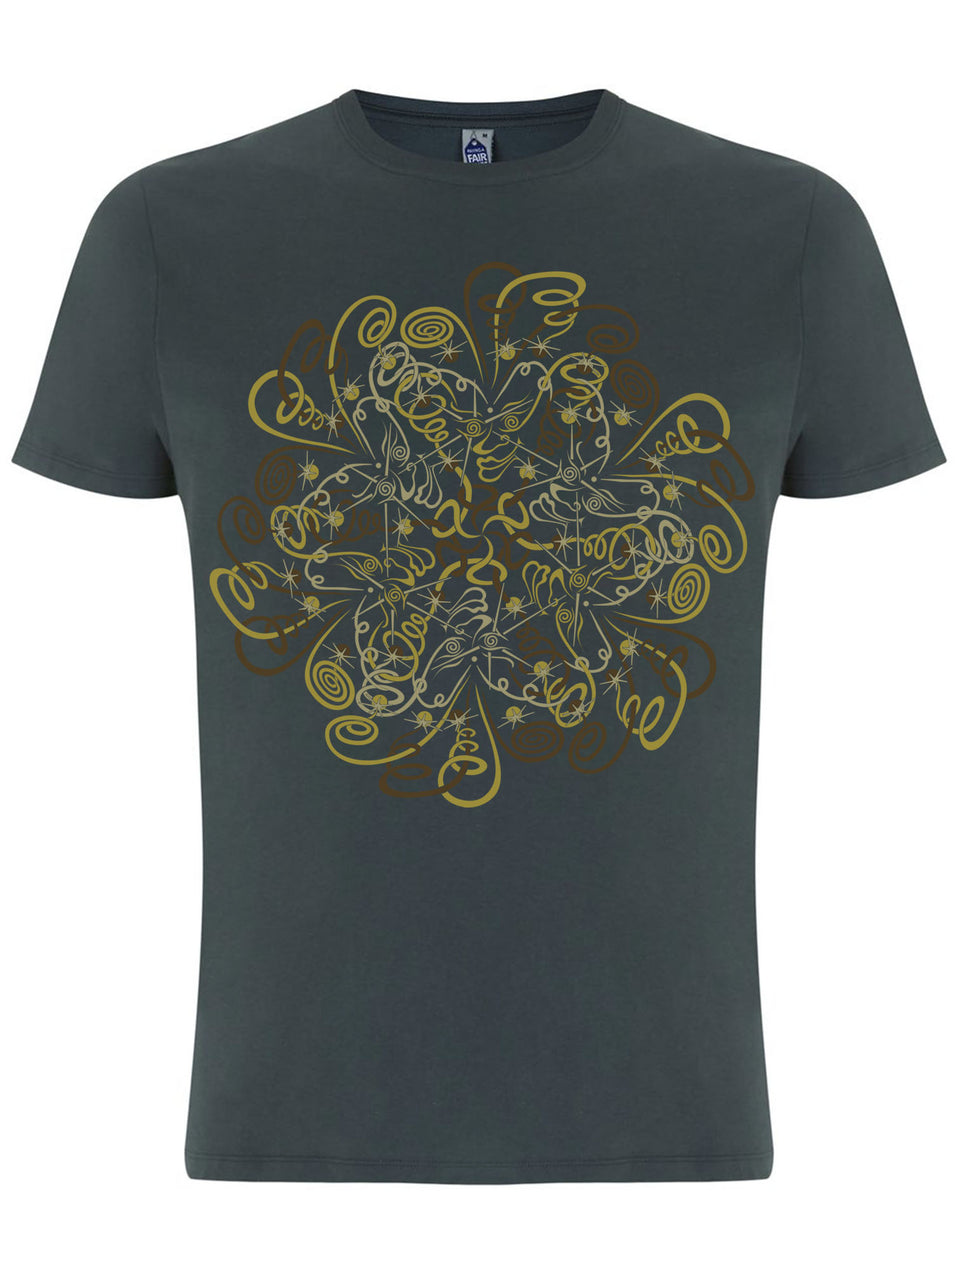 DyMiTry Made To Order Men T-Shirt - Light Charcoal